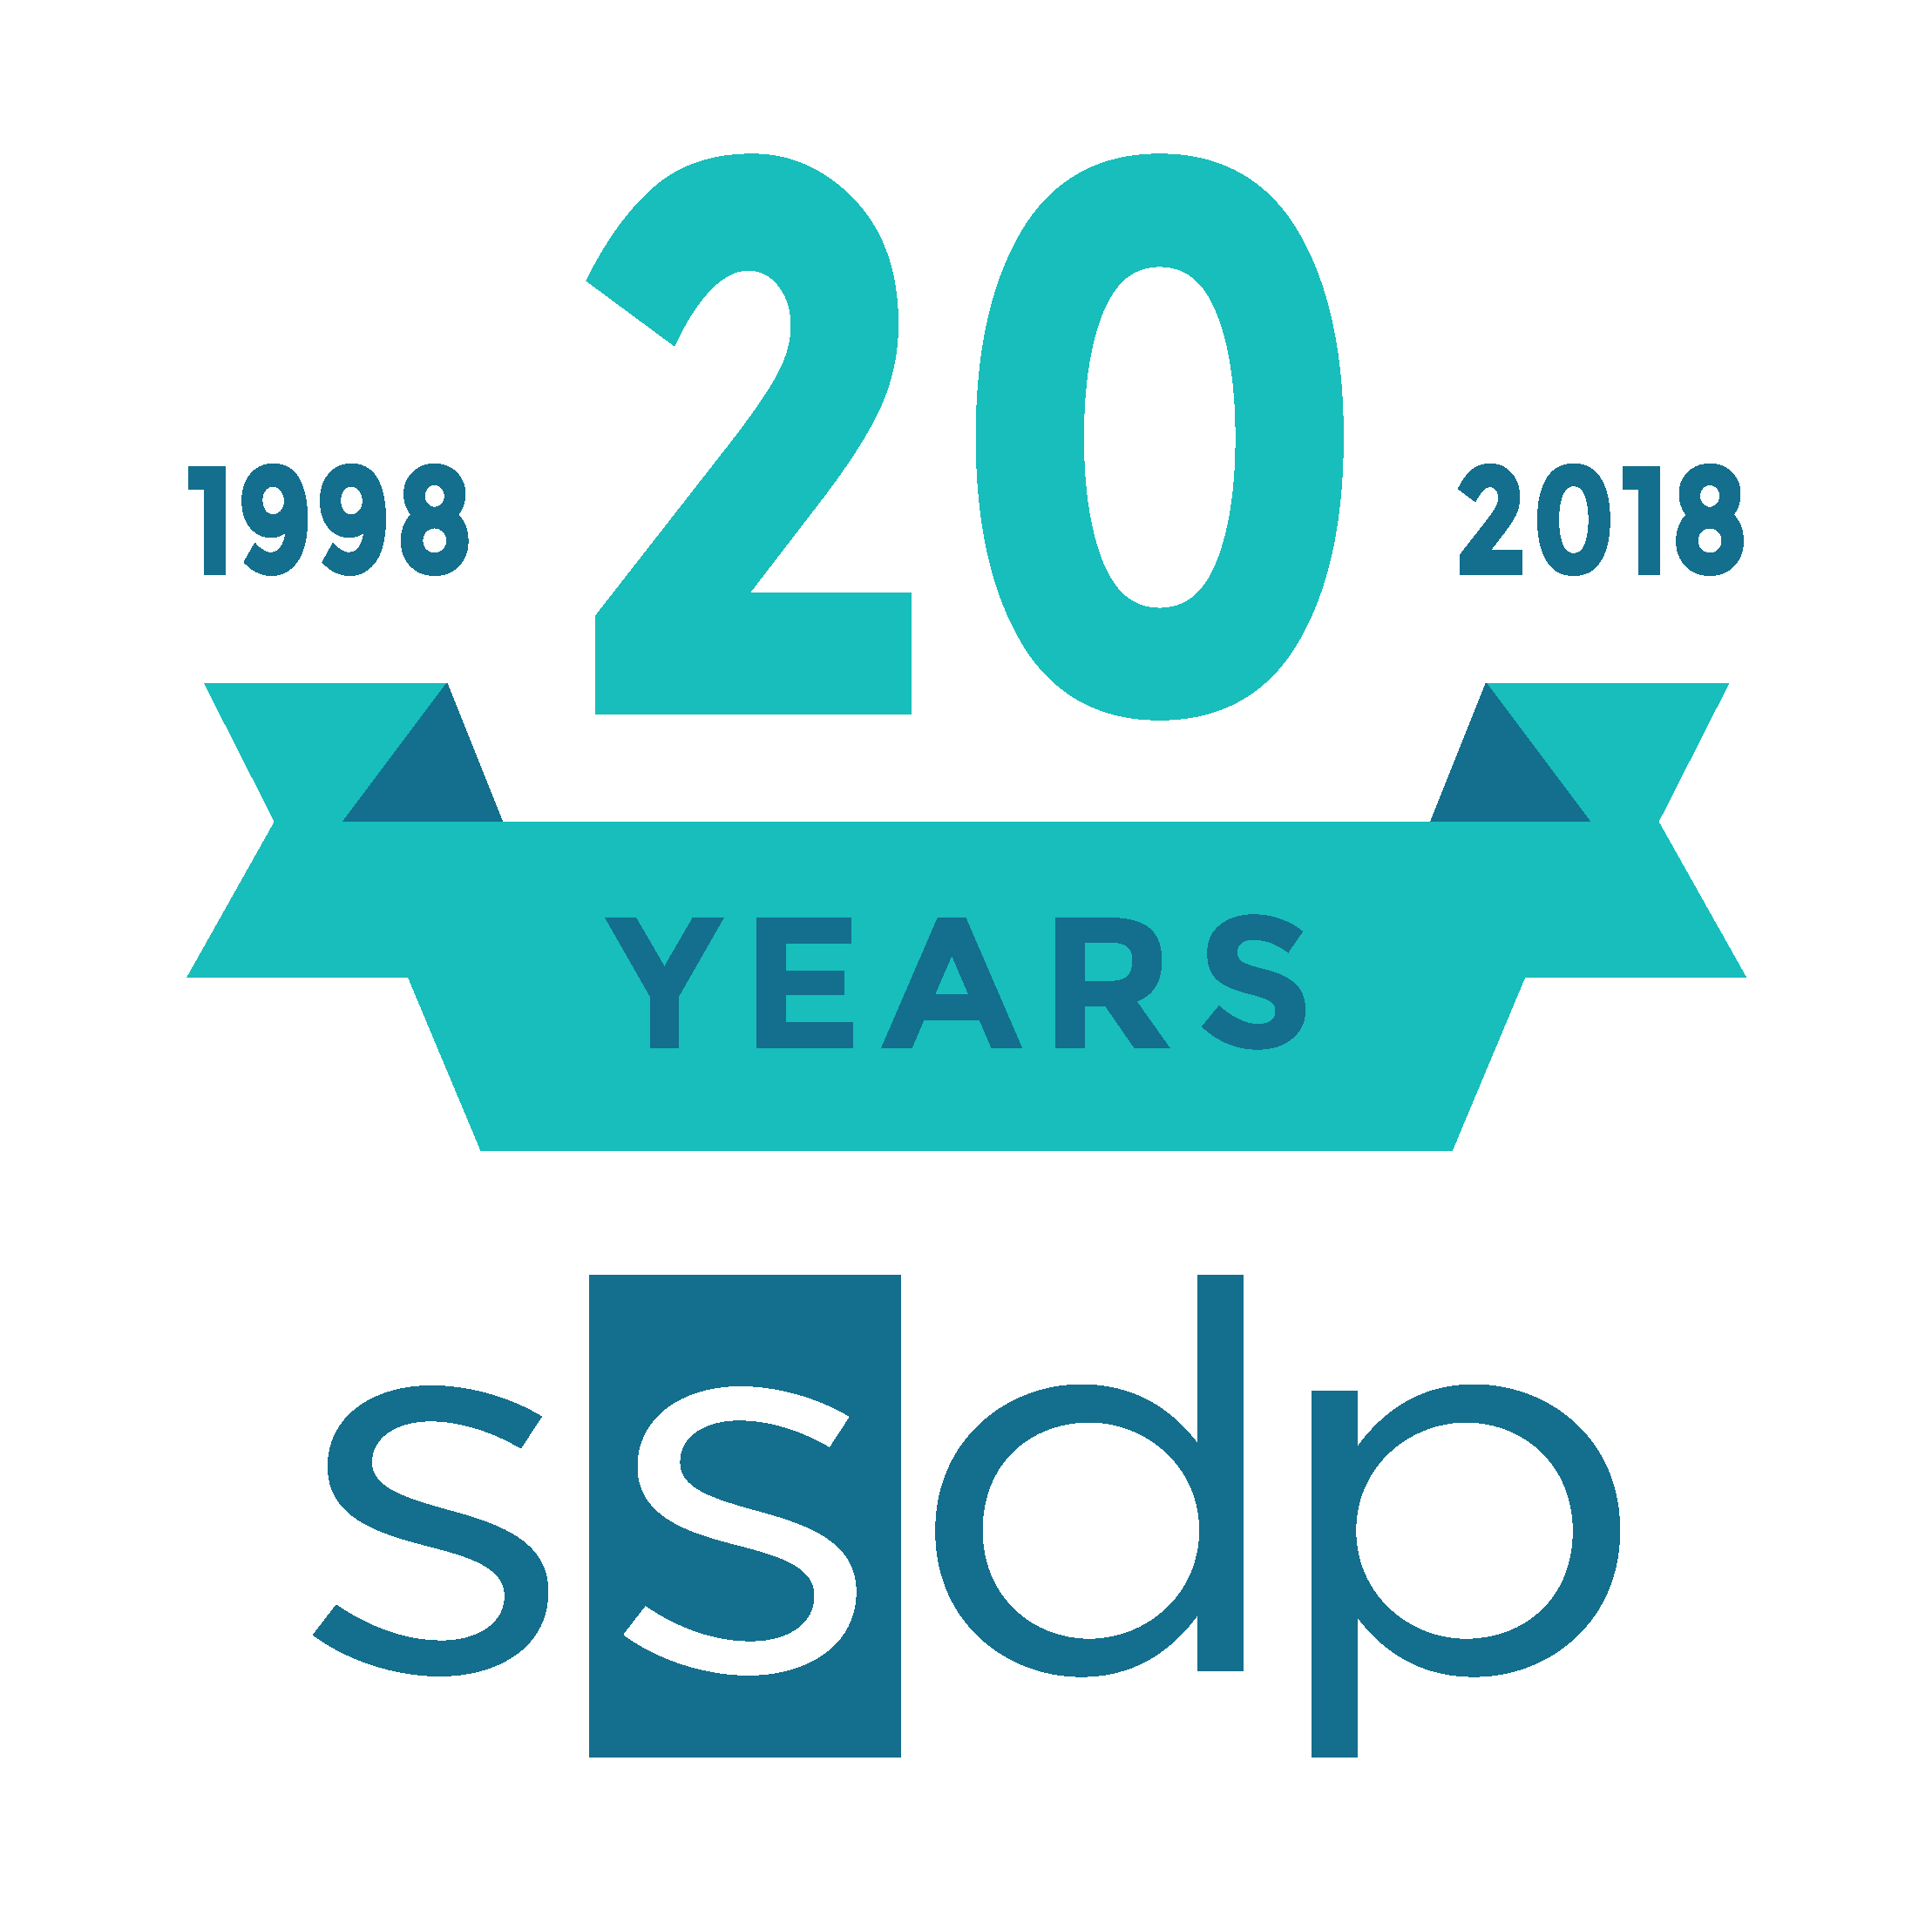 Ssdp20 logo transparent